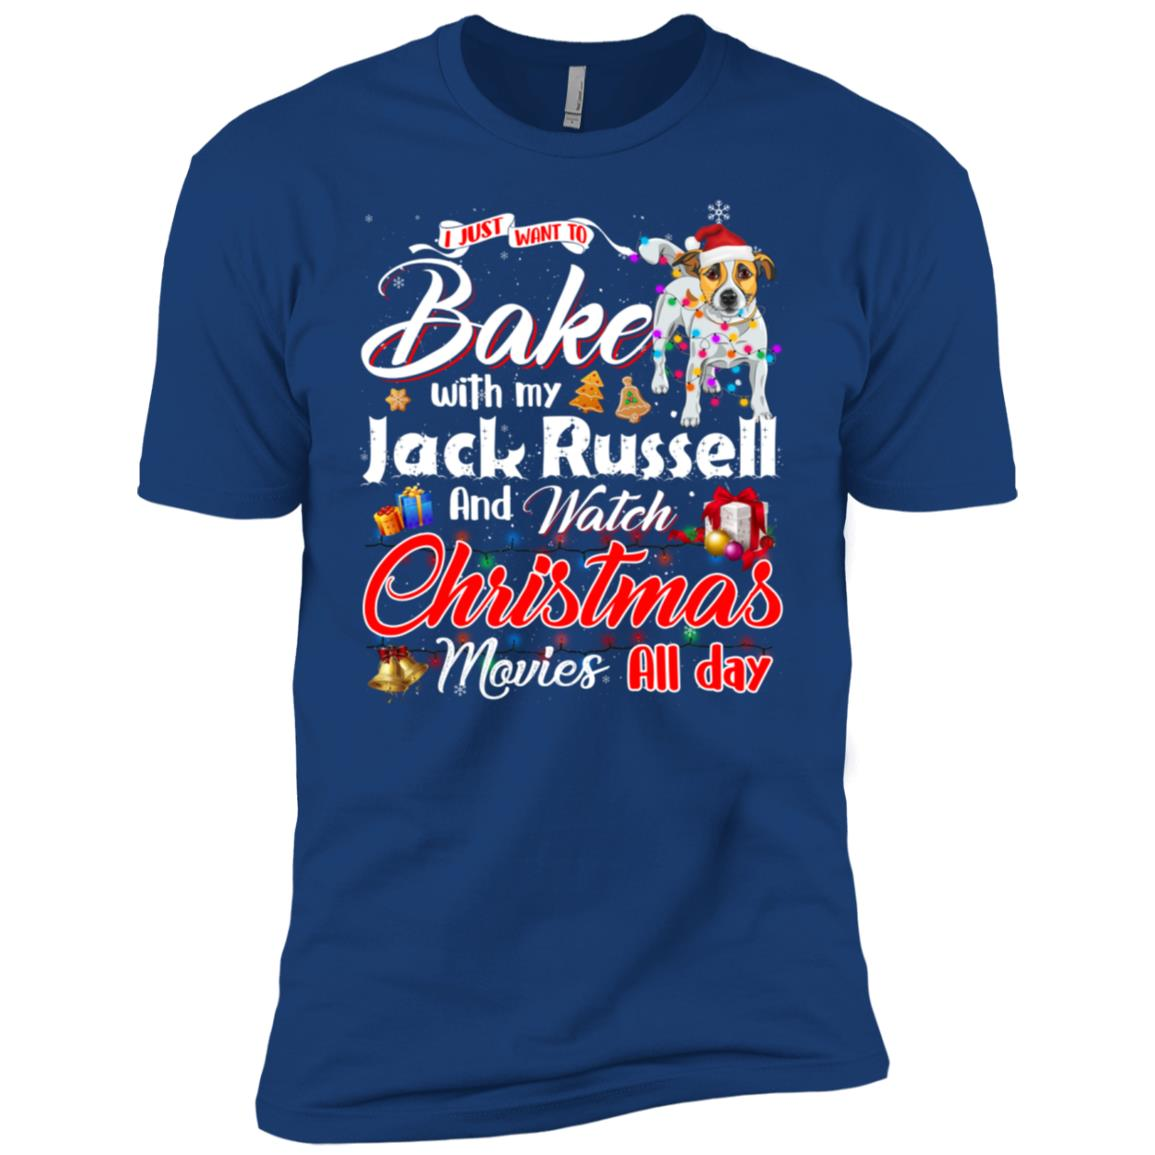 Bake Stuff with Jack Russell Watch Christmas Movies Long sle Men Short Sleeve T-Shirt